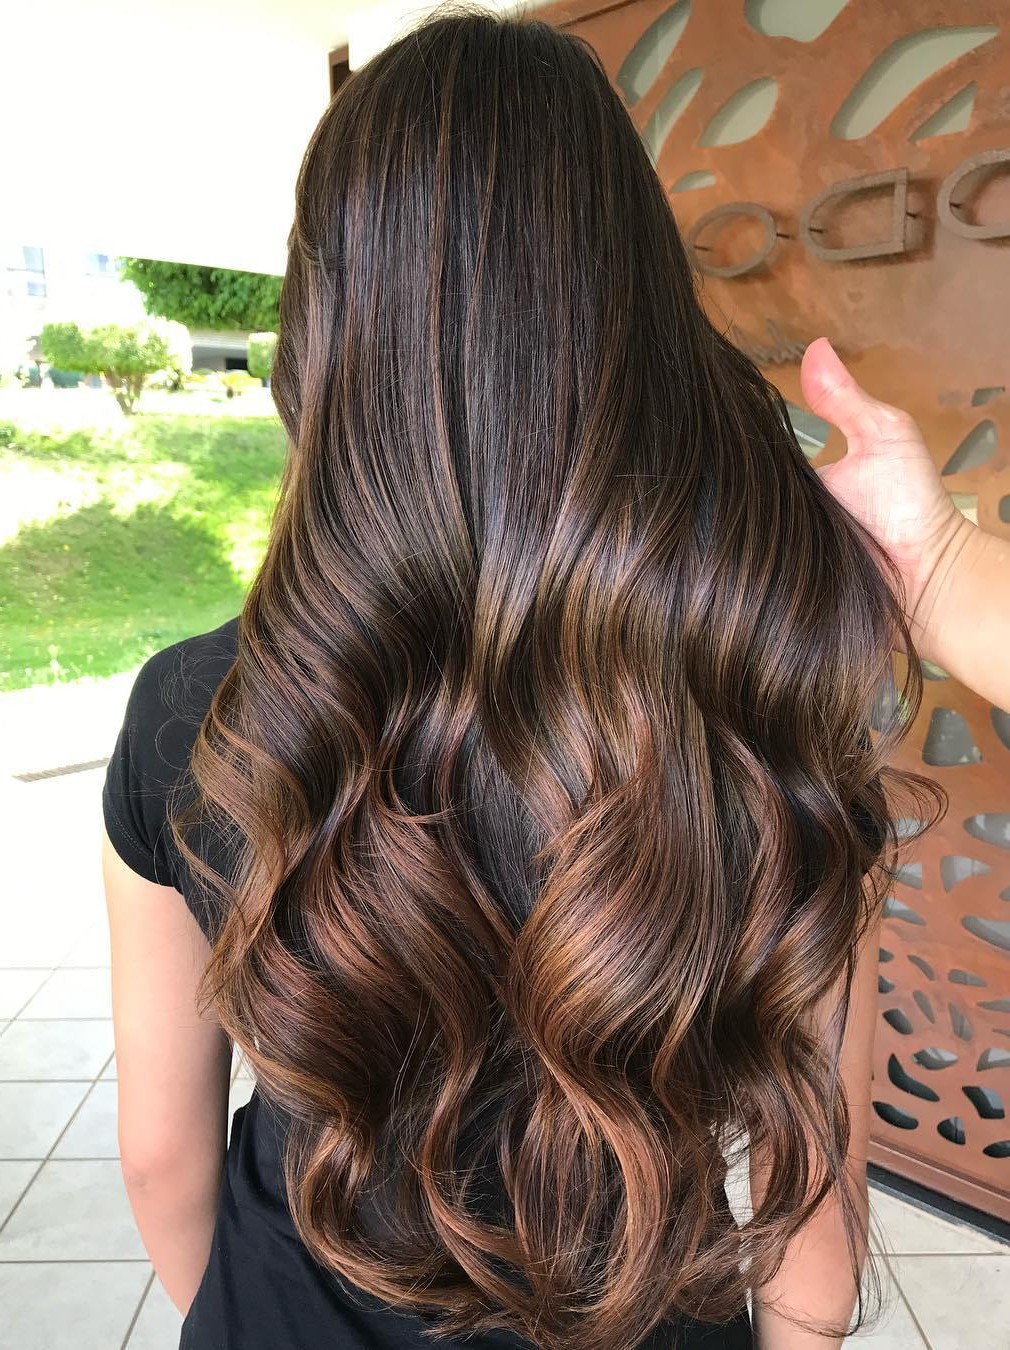 30 Hottest Trends For Brown Hair With Highlights To Nail With Regard To Short Brown Hairstyles With Subtle Highlights (View 3 of 20)